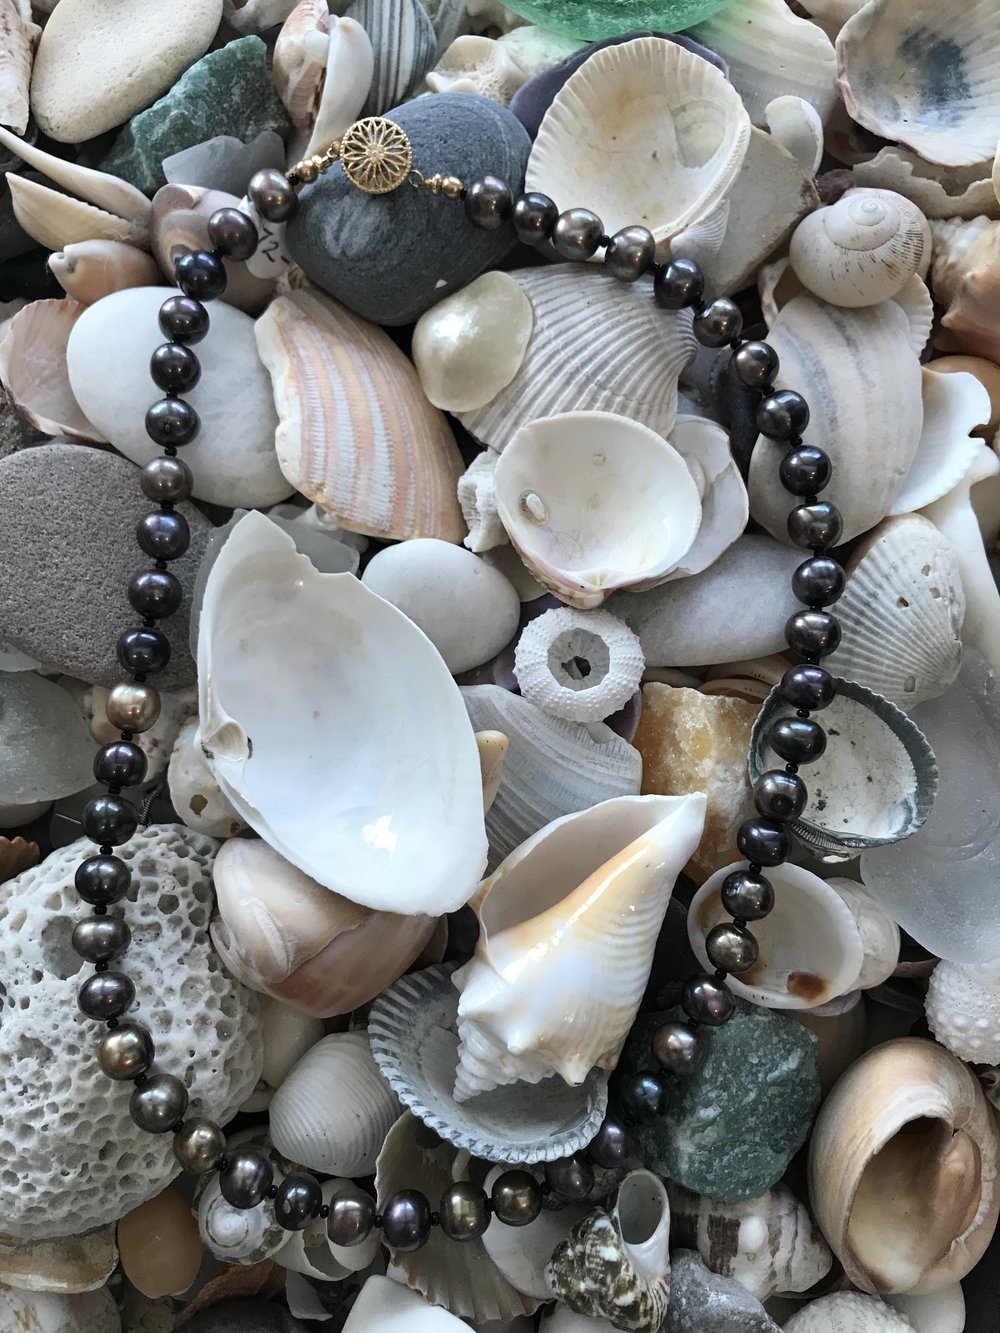 Basic Beading 101: Learn the basics of beading. You will create a simple necklace, bracelet or anklet in this one hour workshop. This is a beginner class. Ages 10 and up. Class size is limited to 5 students. $25.00 plus materials (Or $40.00* includes materials for one project necklace or bracelet. 1 hour.